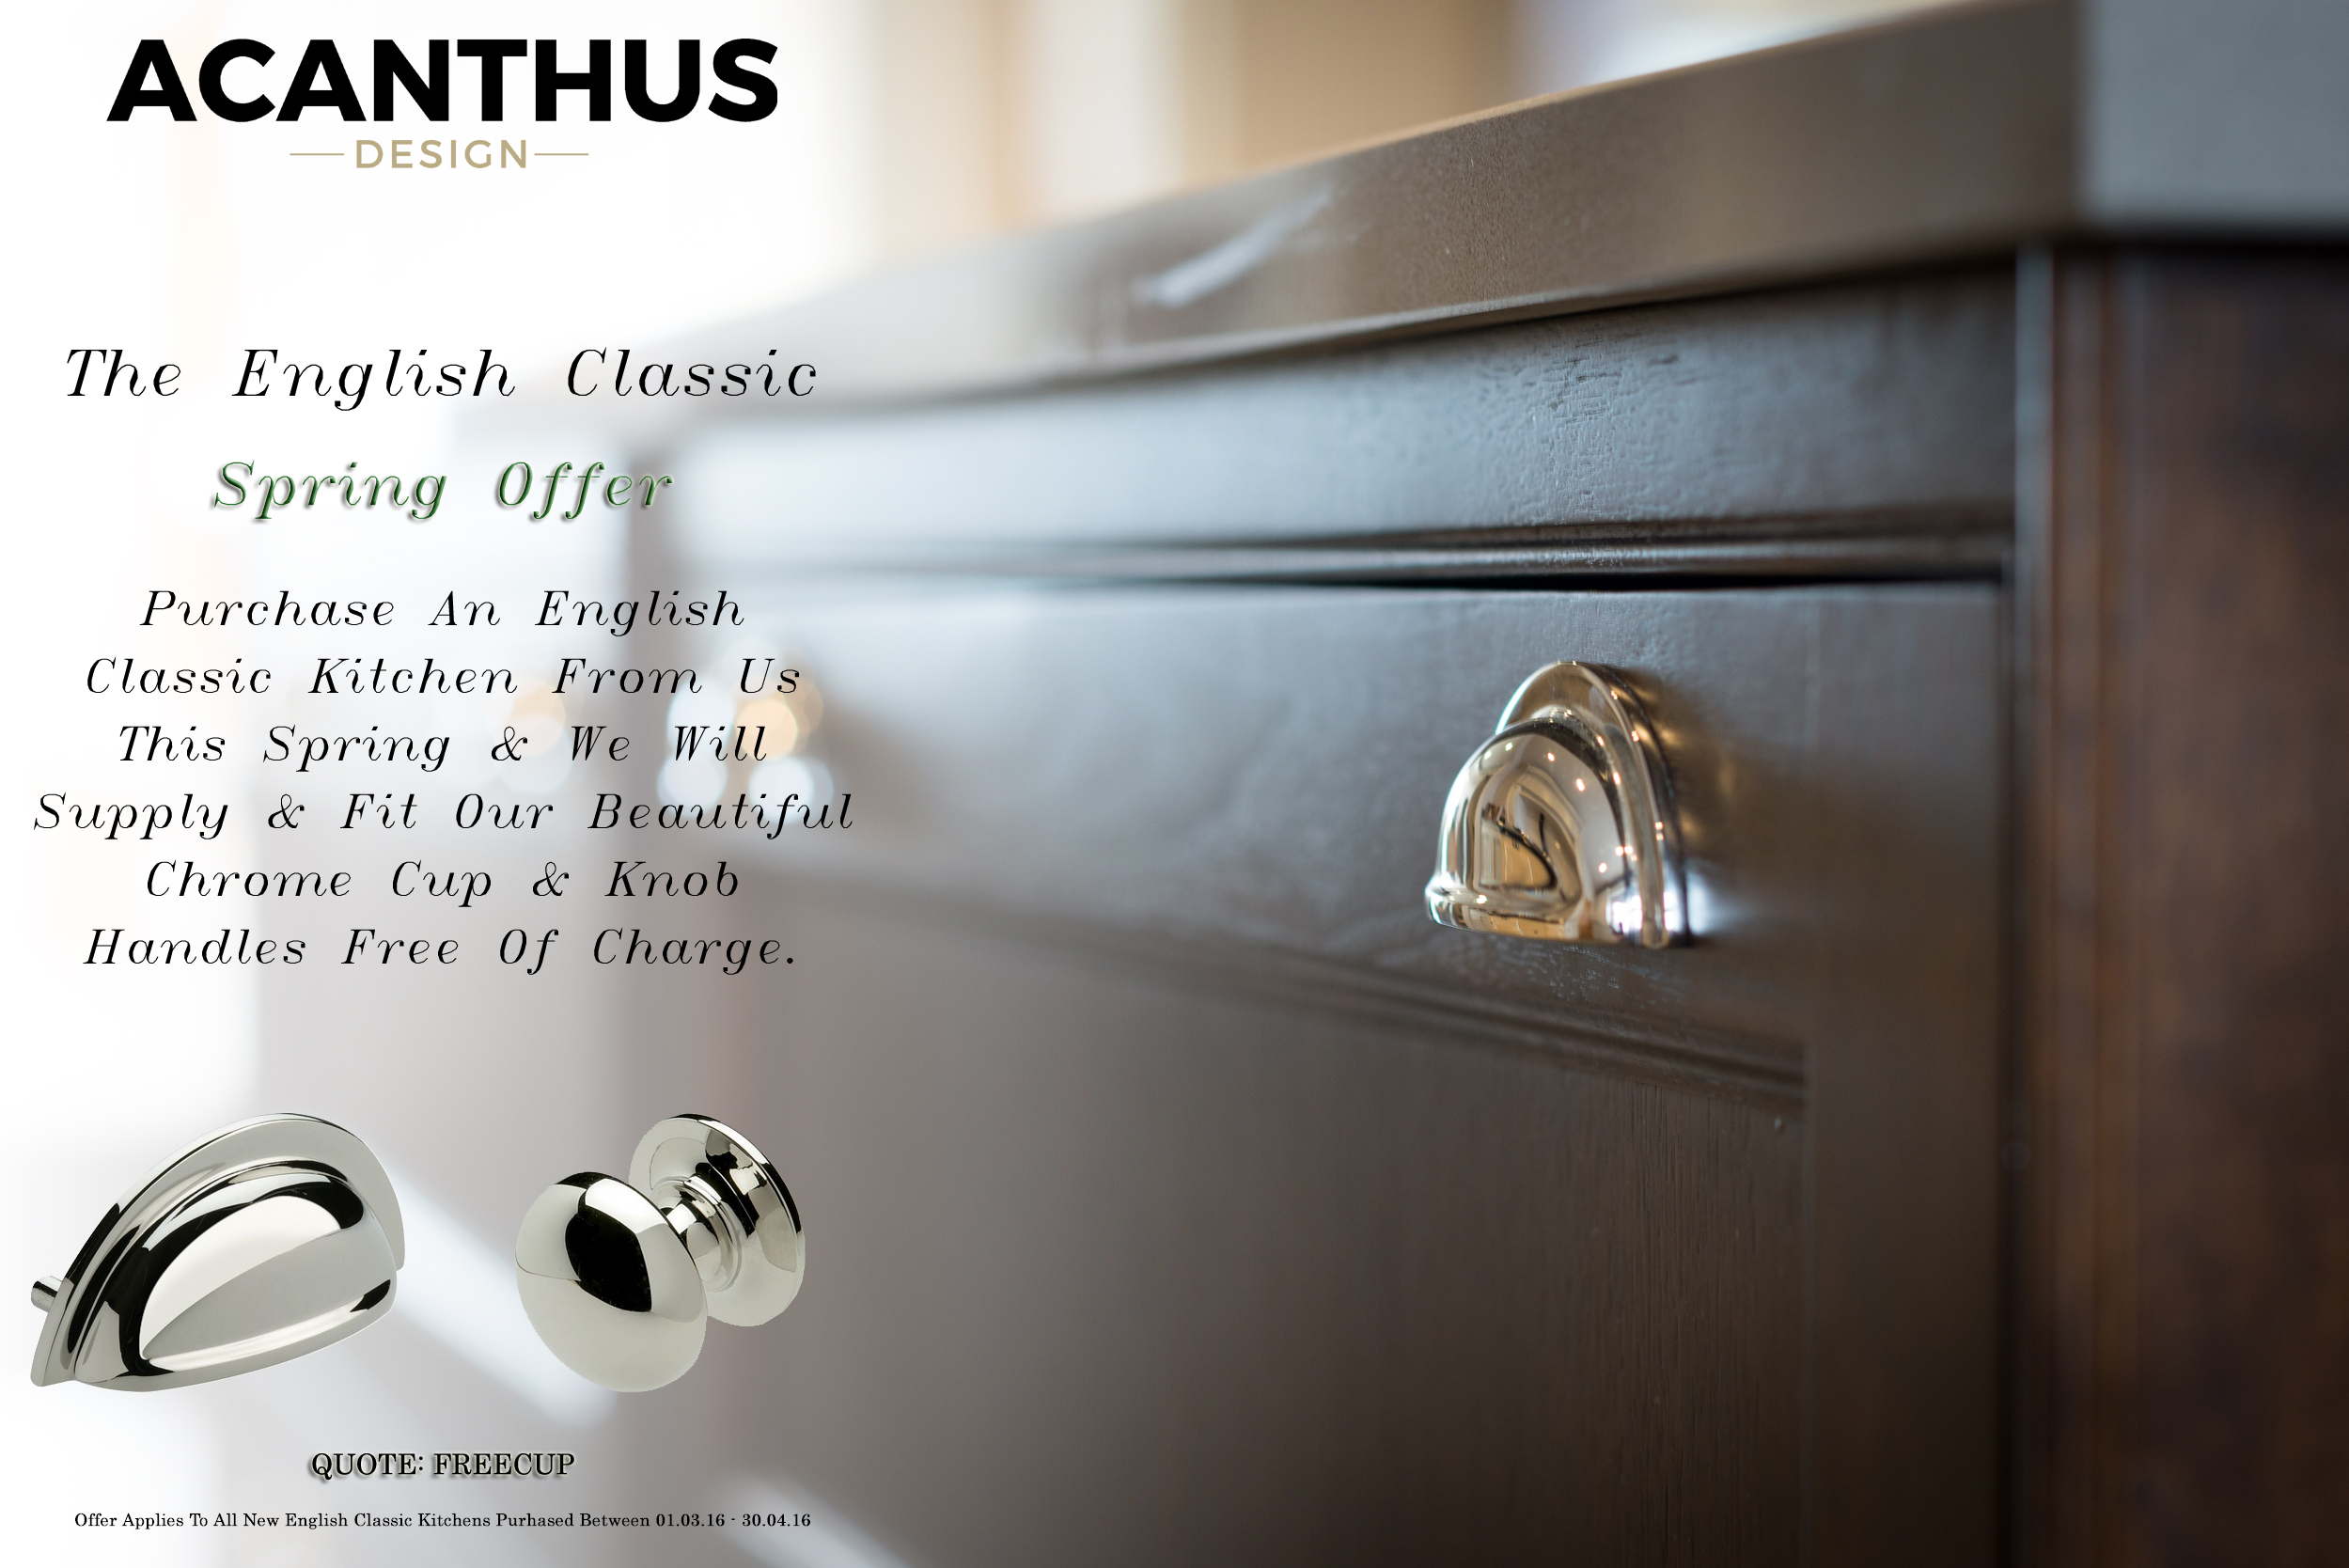 Free Chrome Handles With Every Acanthus English Classic Kitchen